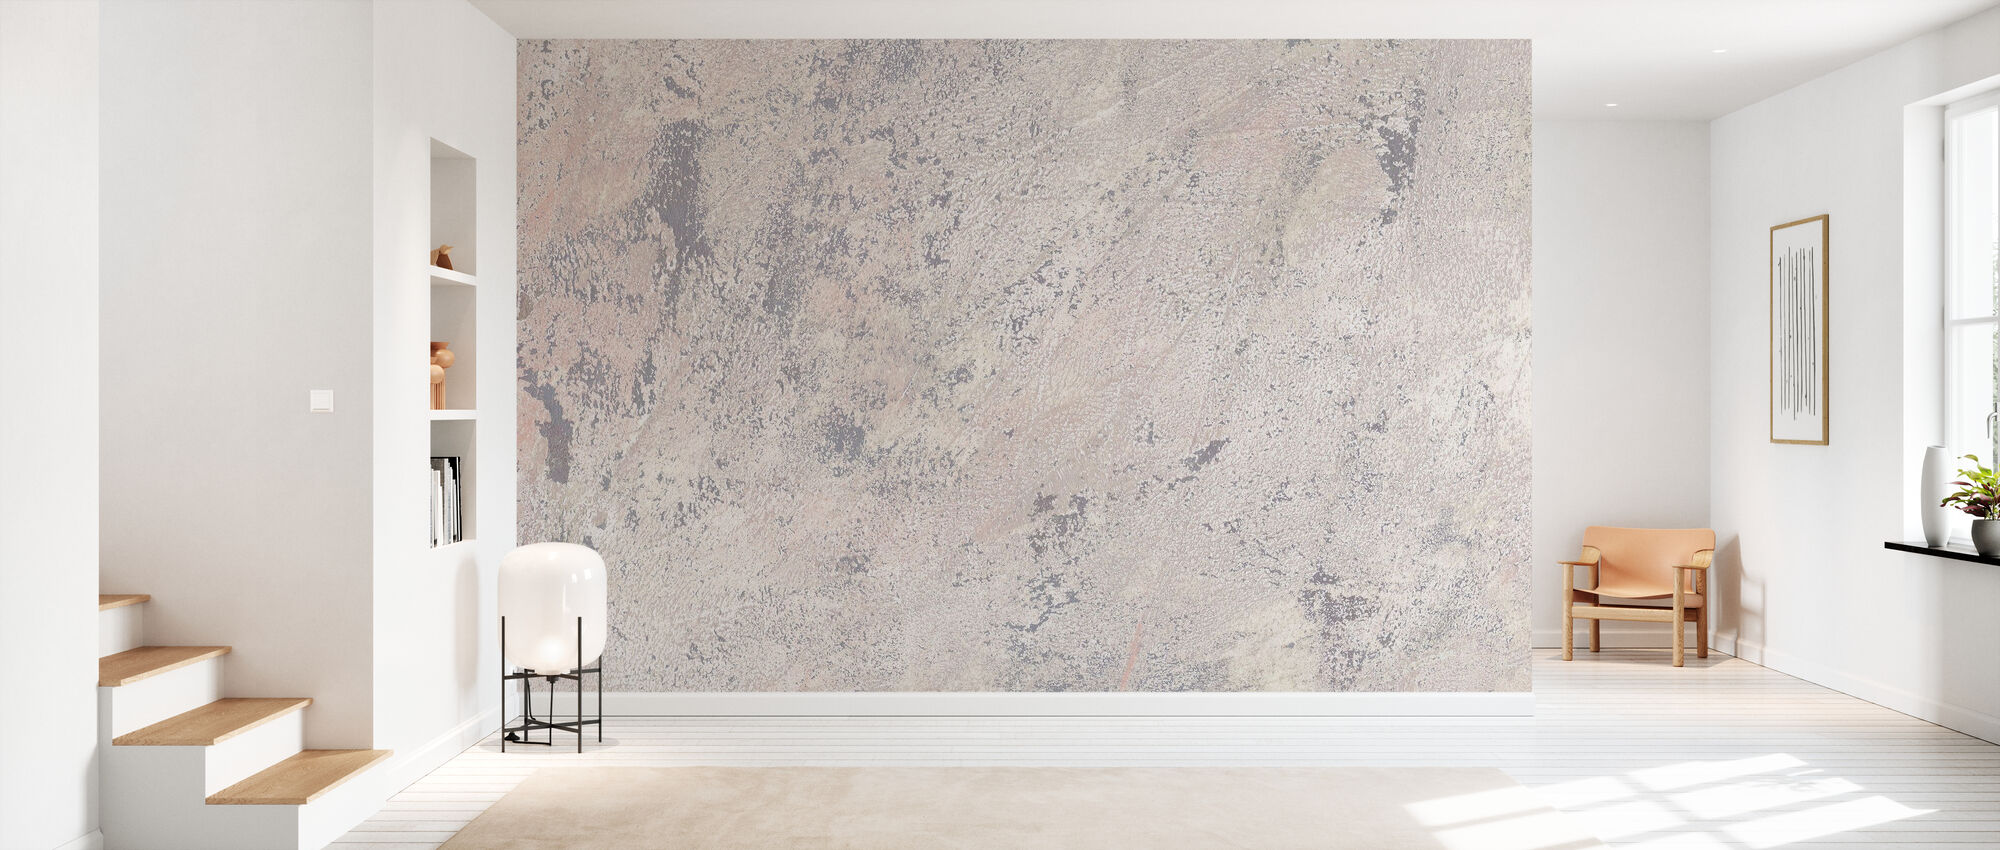 Weathered Toned Wall - Wallpaper - Hallway